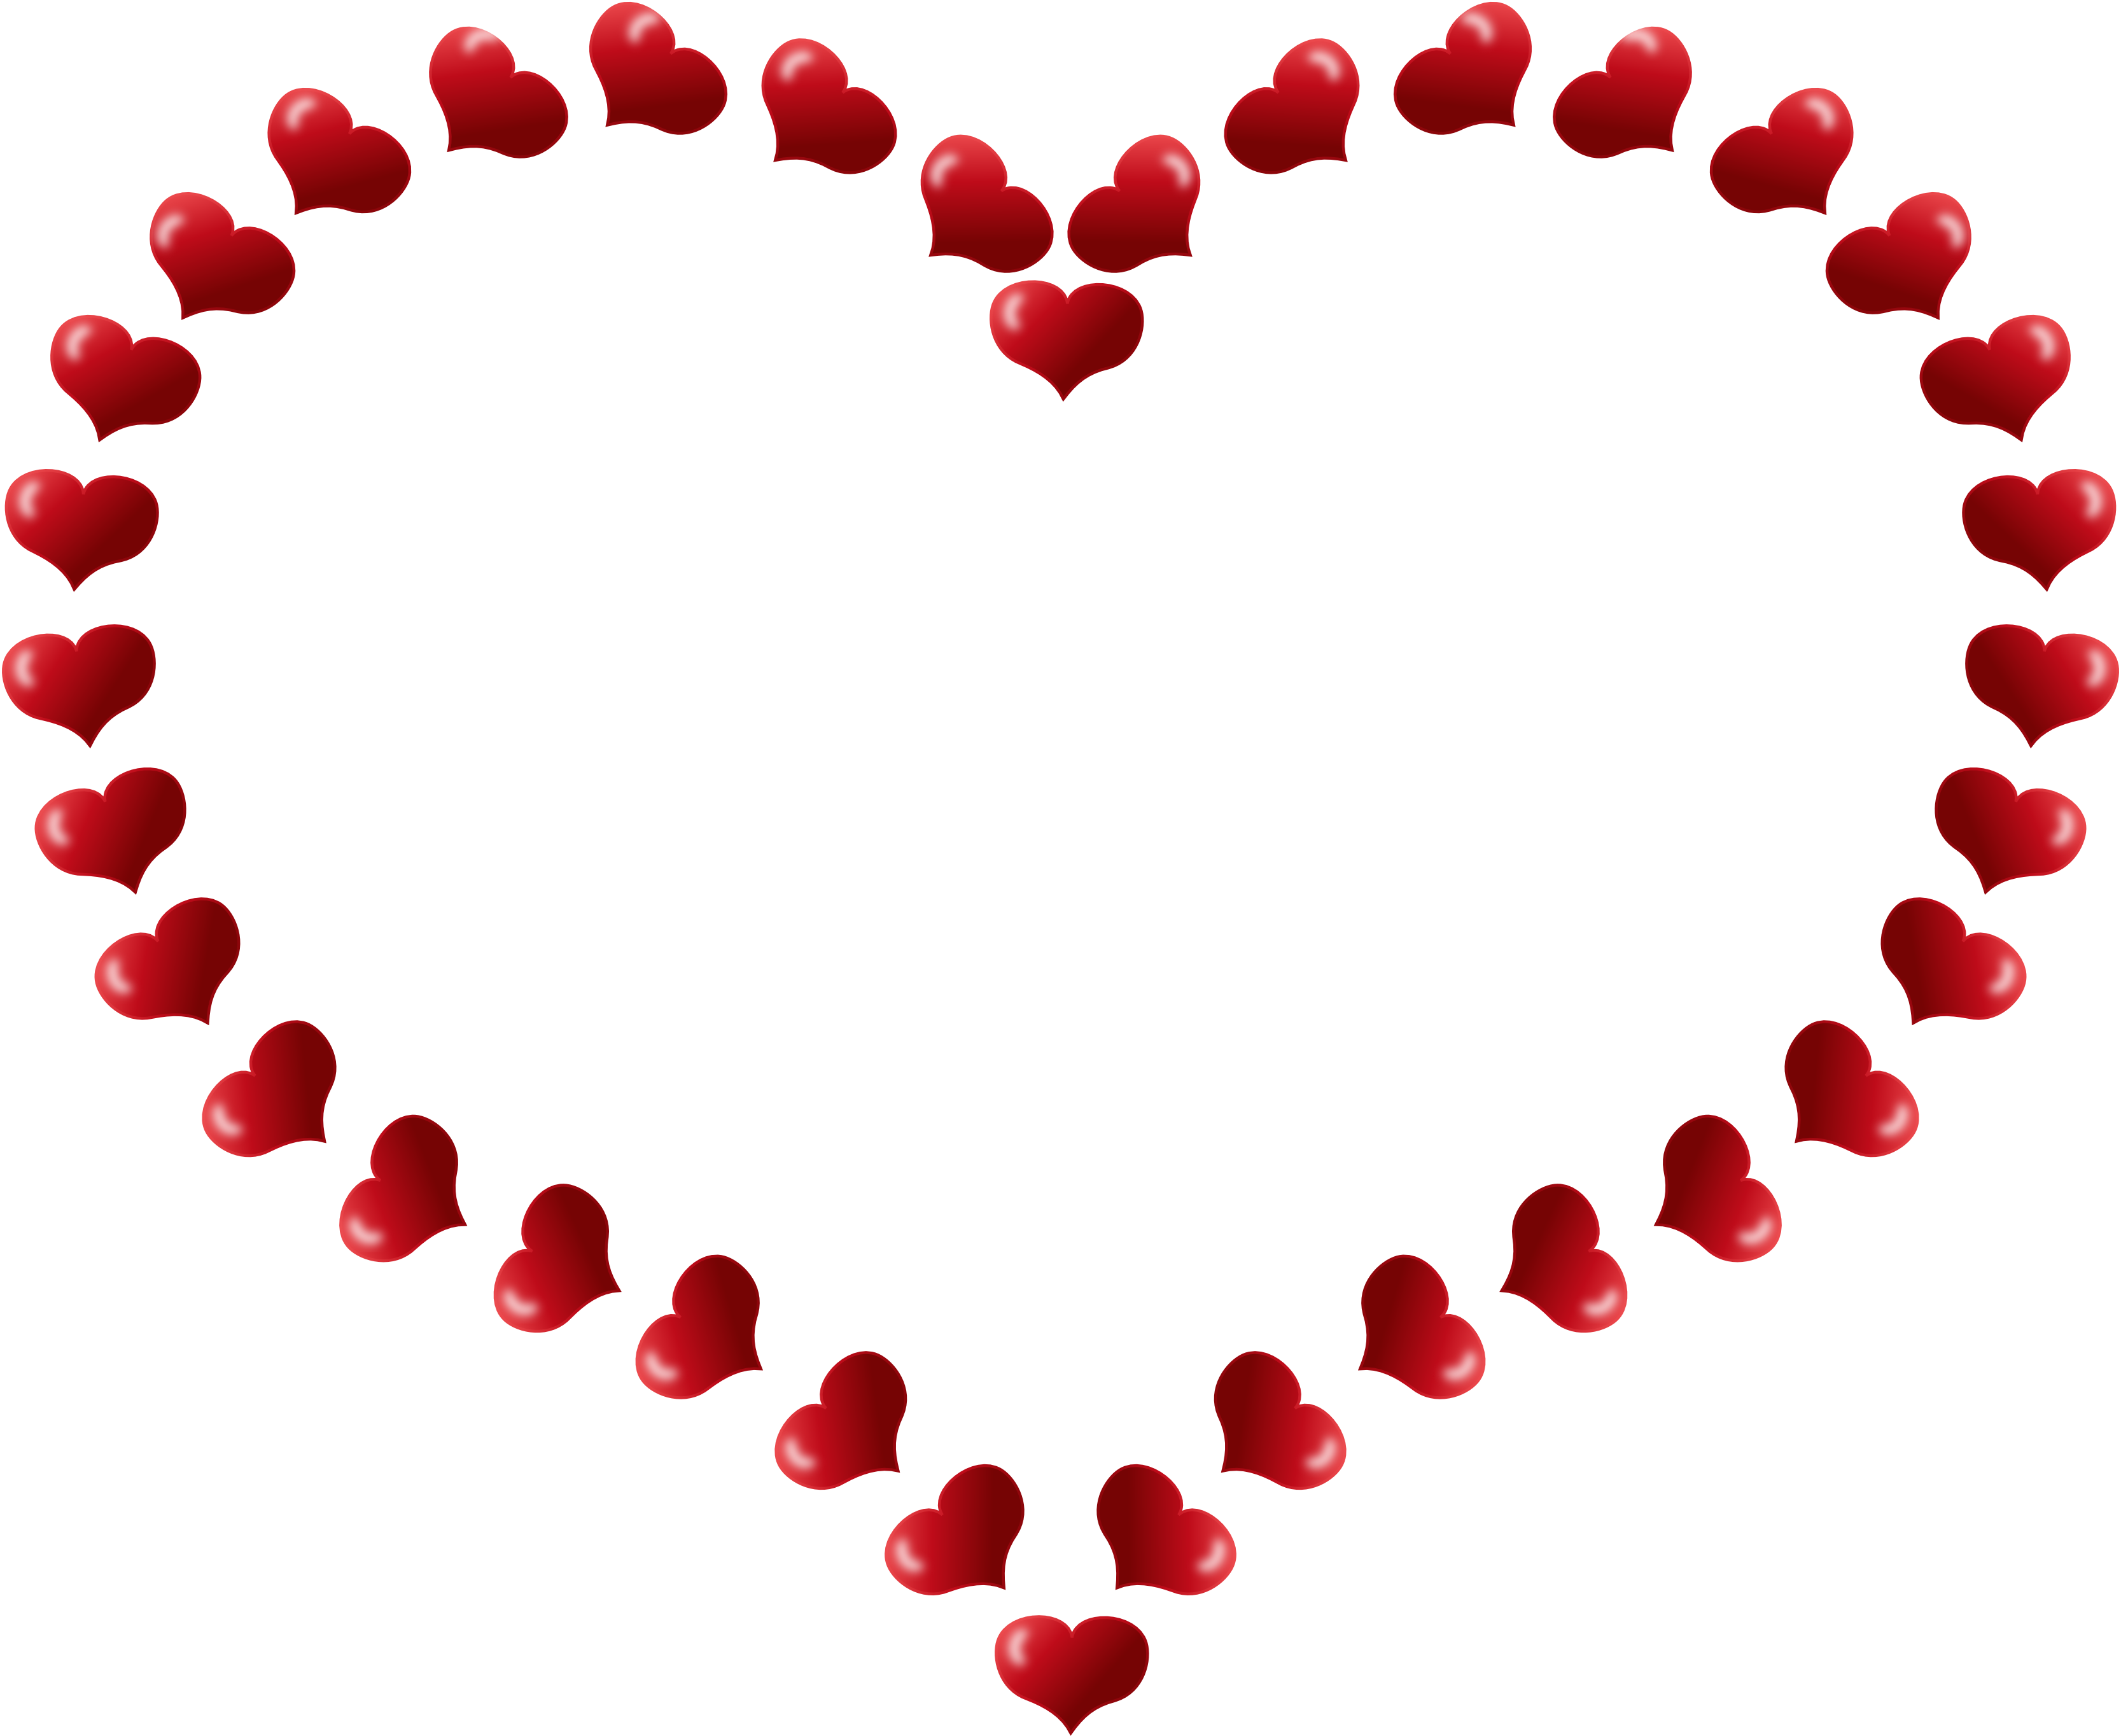 Hearts heartsvalentineredheartshapedborderwithlittleheartspxpng. Queen clipart valentines day